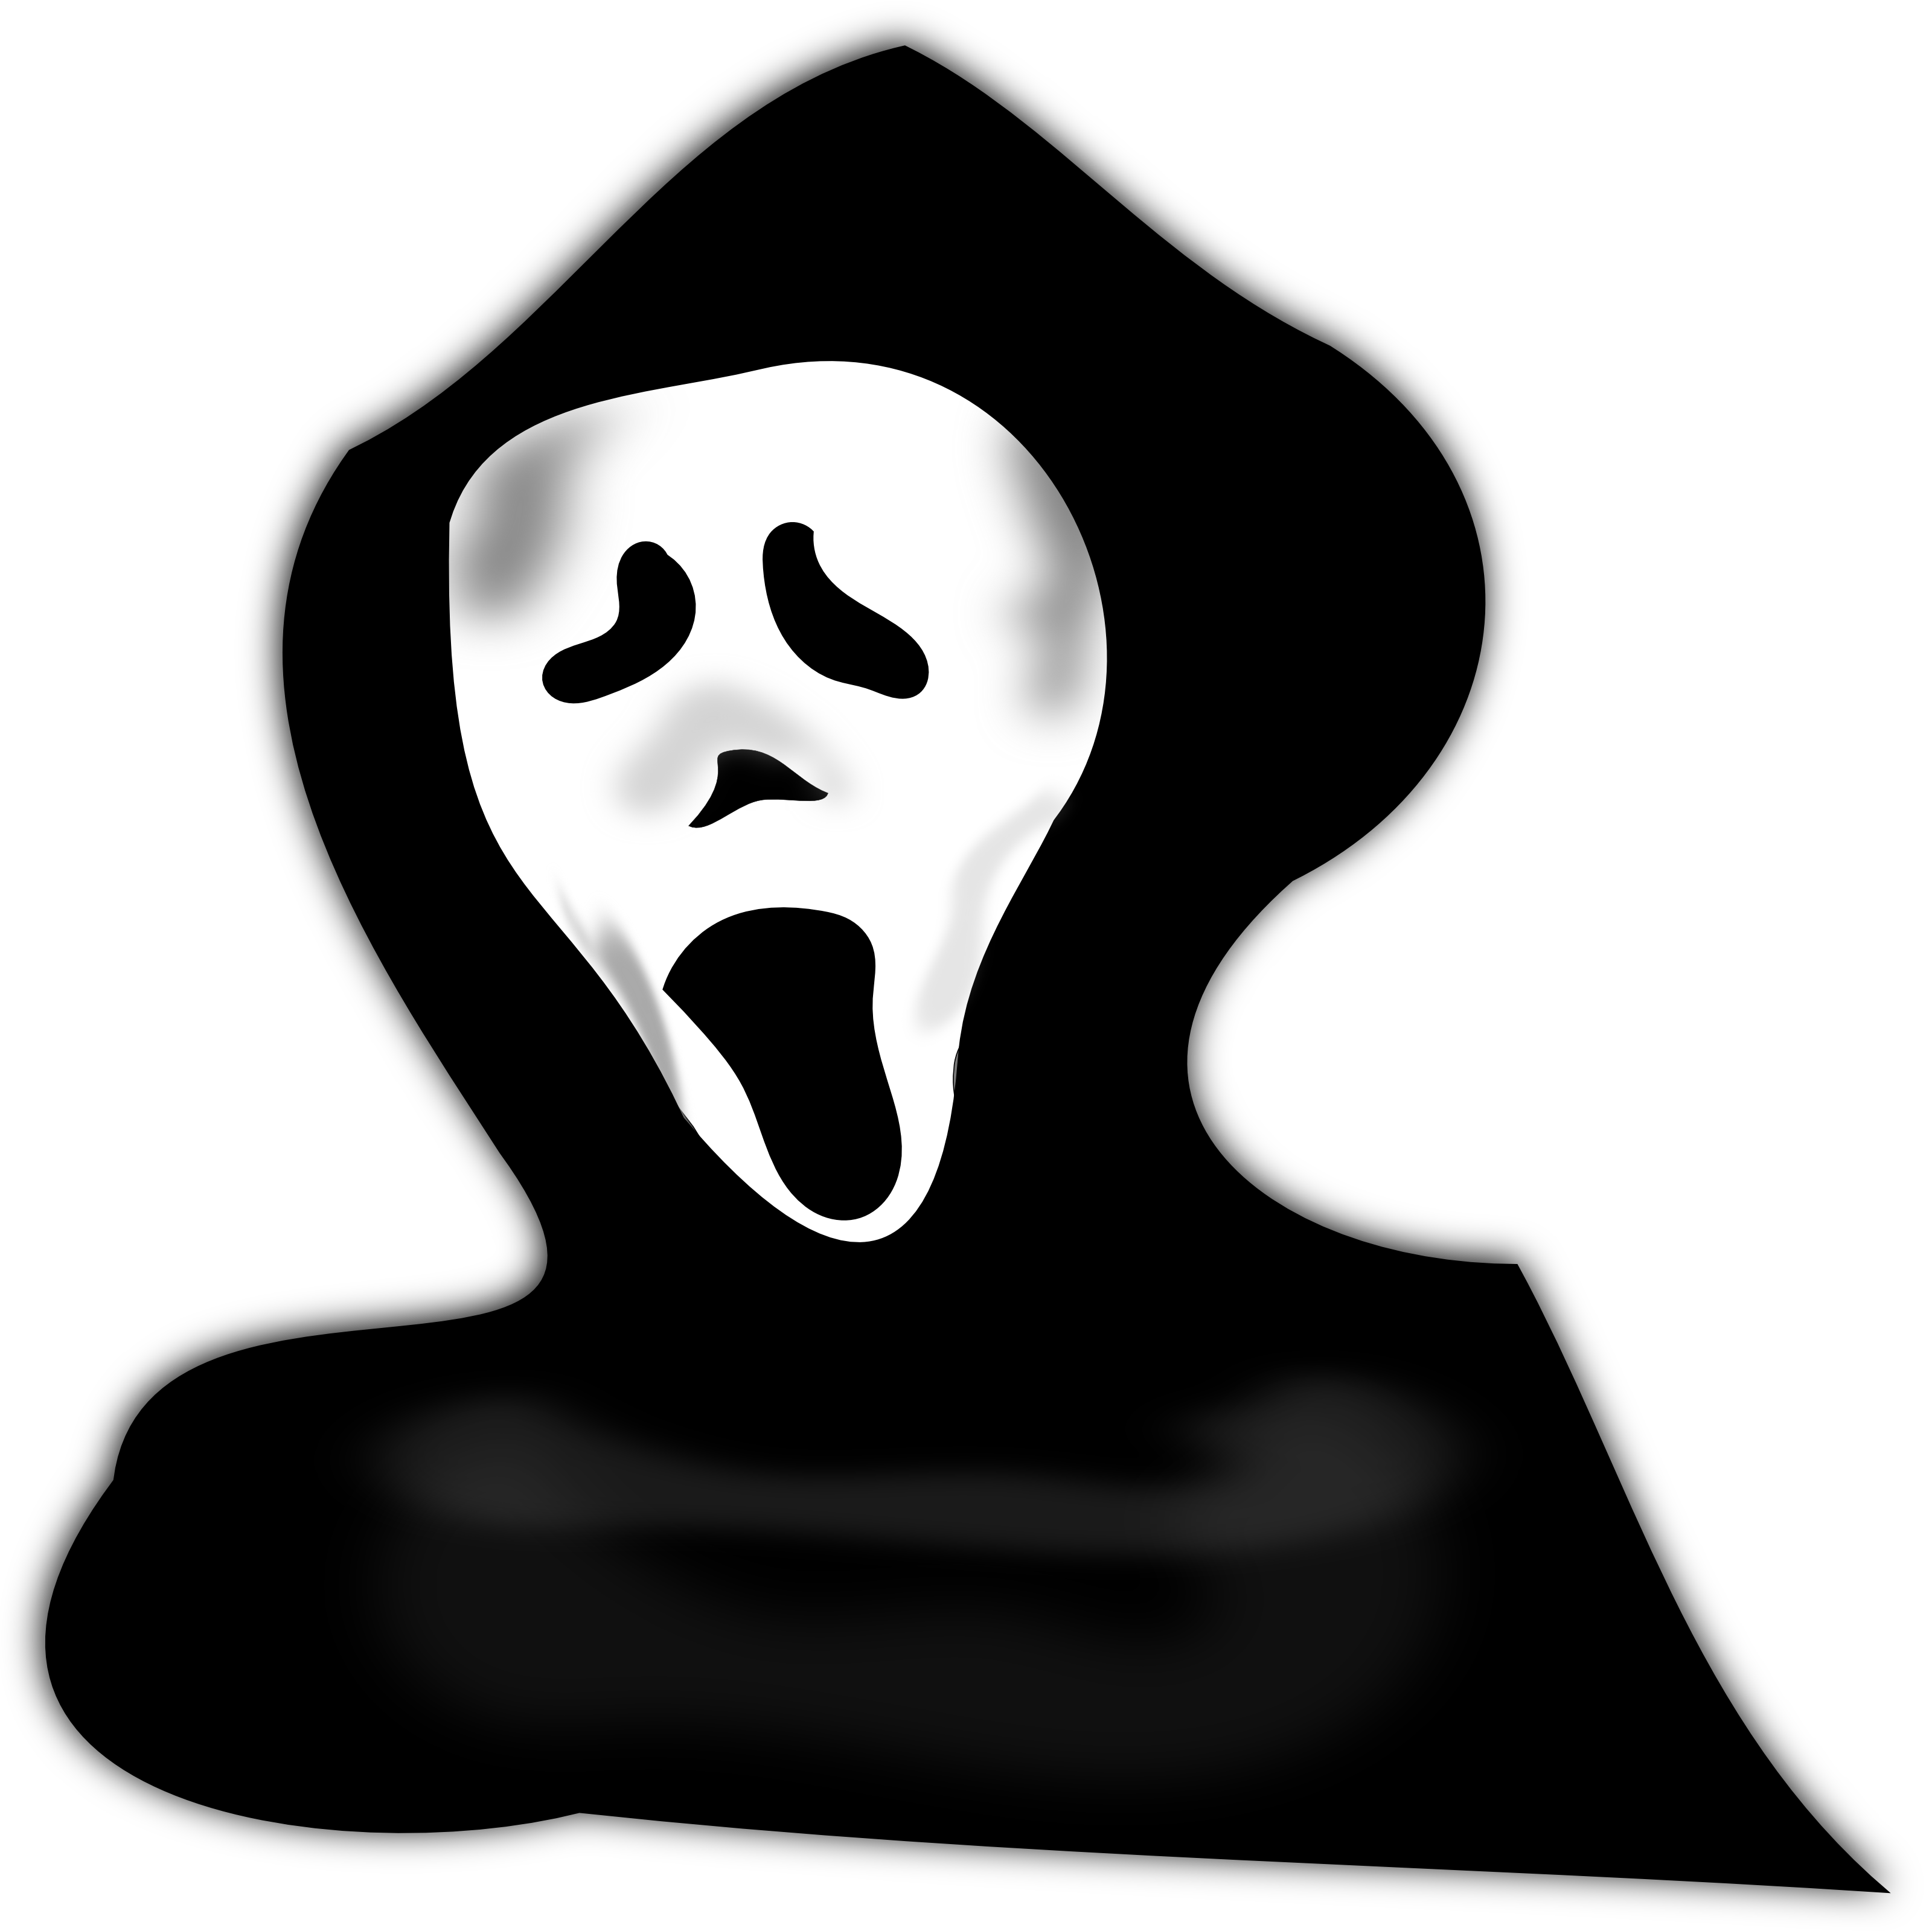 Png File Name: Halloween Ghost Hdpng.com  - Ghost, Transparent background PNG HD thumbnail